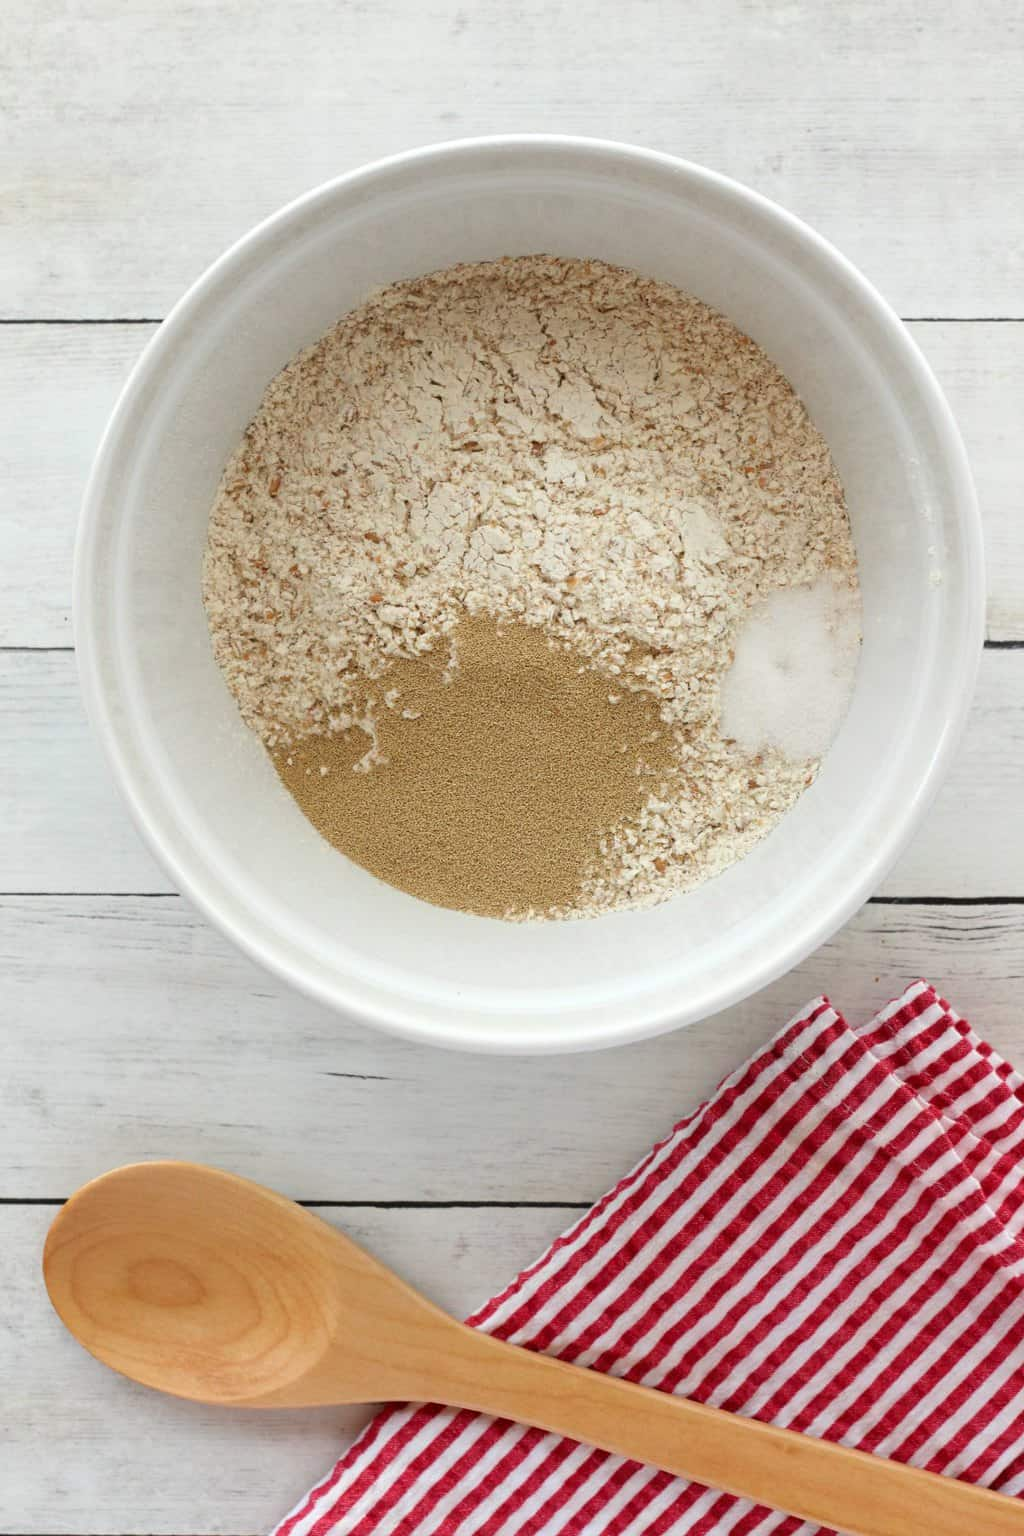 Flour yeast and salt in a mixing bowl, ready to make wholewheat bread.